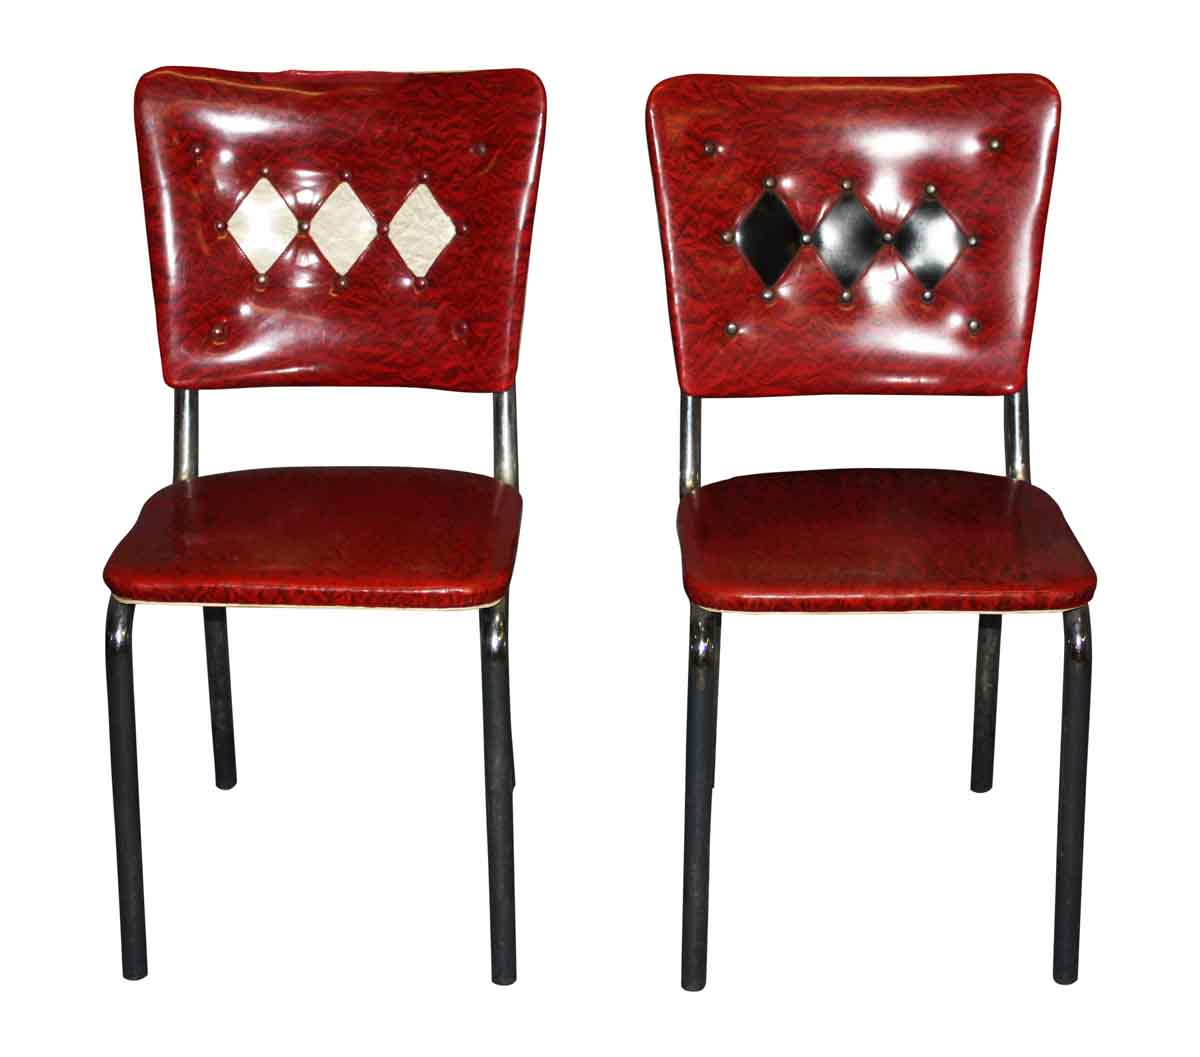 Pair of Red Vinyl 1950s Dining Chairs